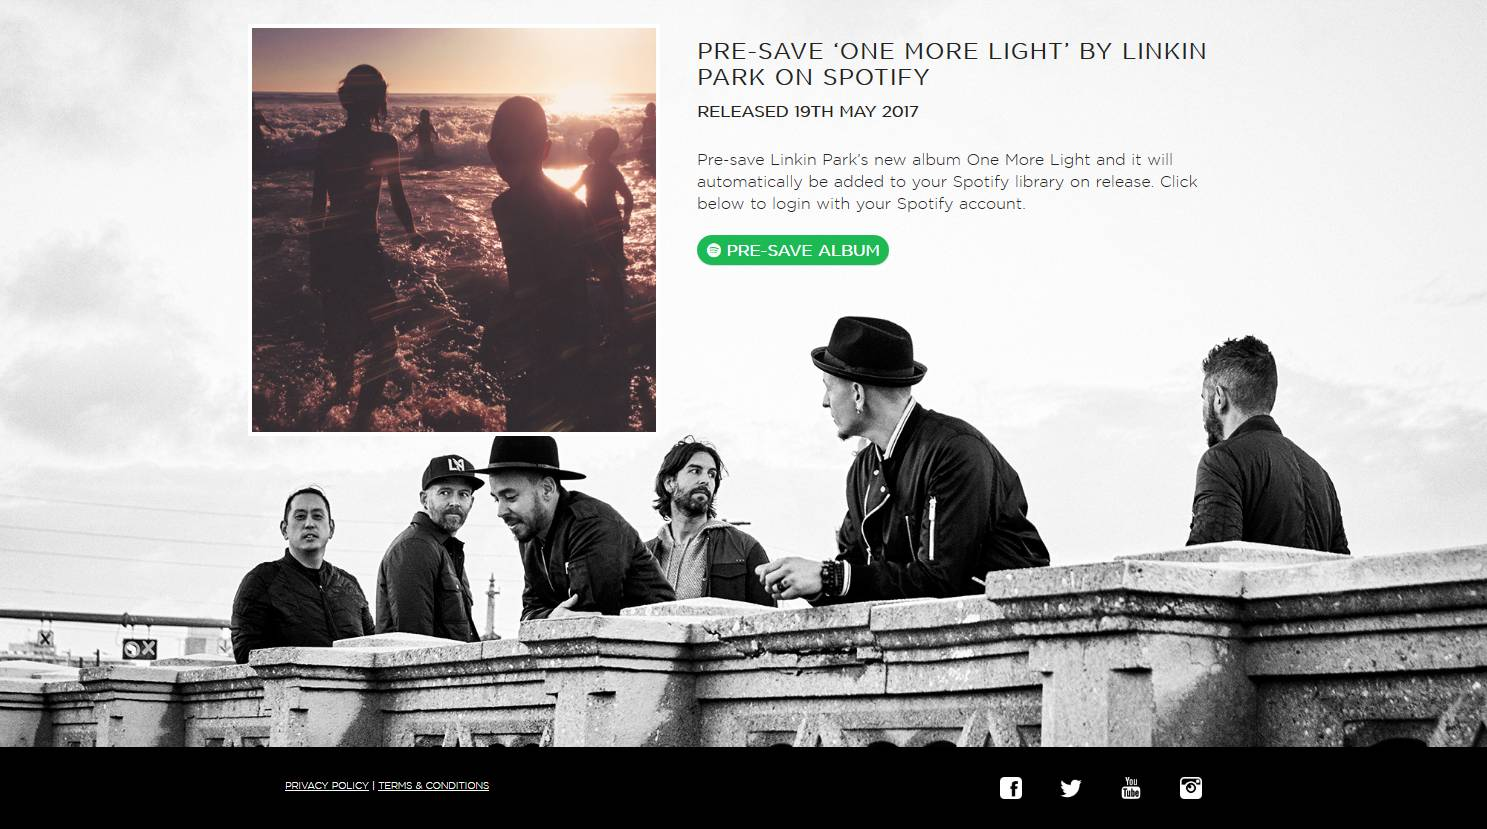 LINKINPARK Pre-Save for Spotify, LINKINPARK Presave For Spotify, LINKINPARK Spotify Pre-Save